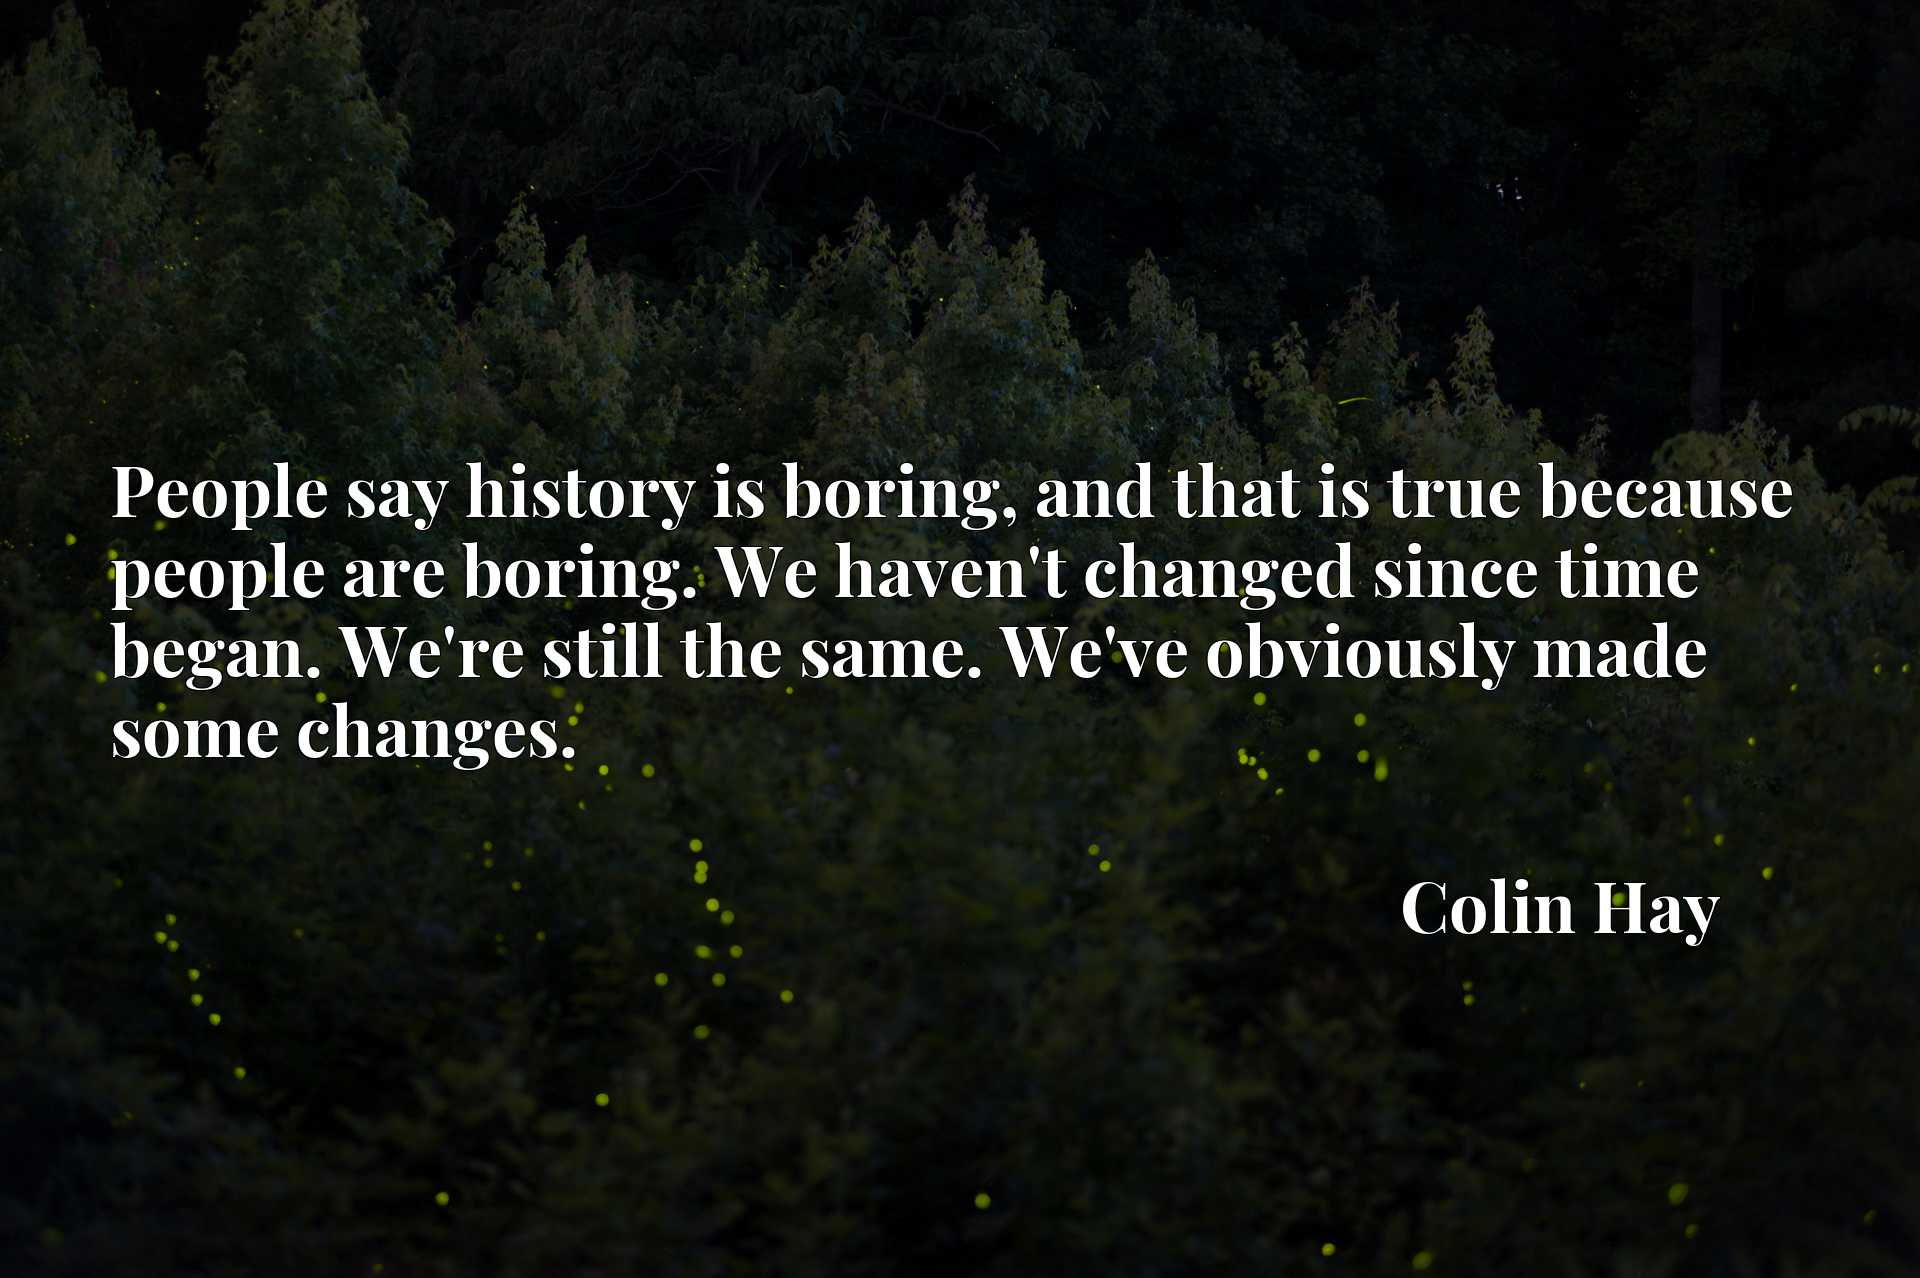 People say history is boring, and that is true because people are boring. We haven't changed since time began. We're still the same. We've obviously made some changes.